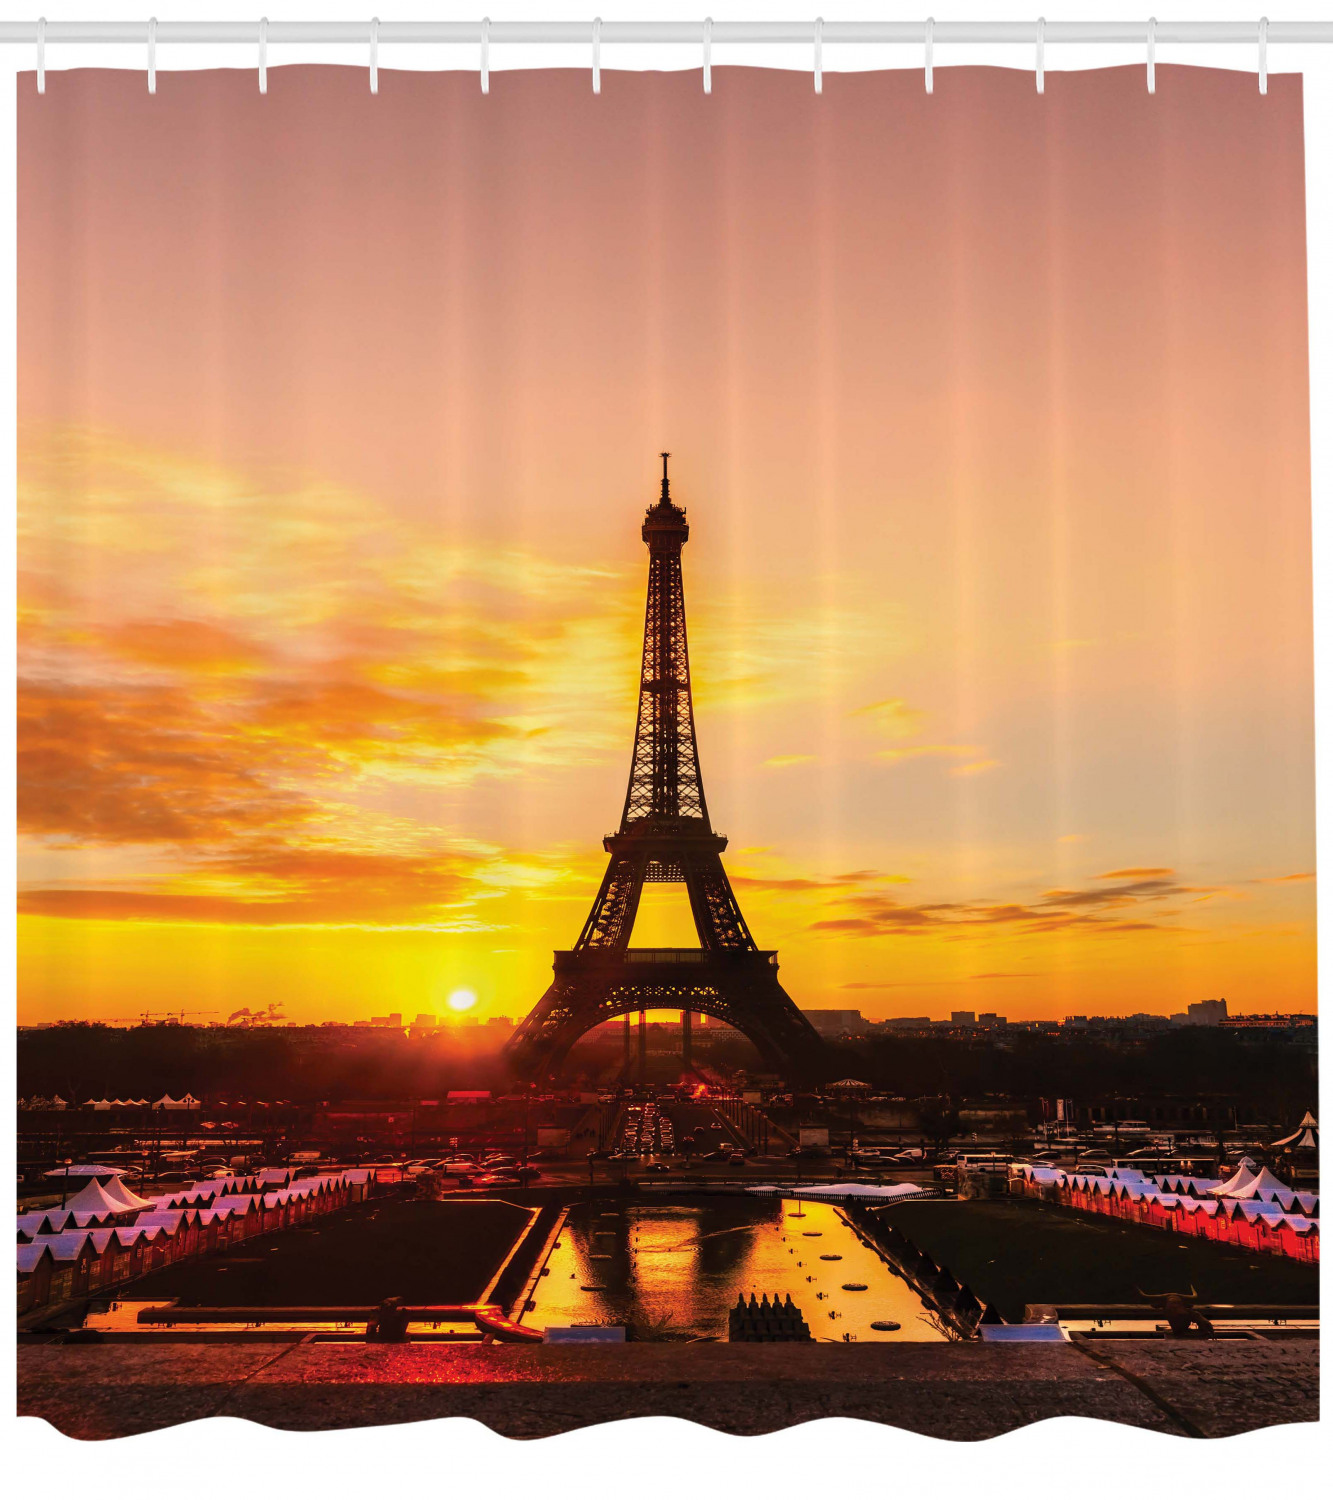 Eiffel Tower Shower Curtain View Of Eiffel Tower At Sunrise Paris Historical Monument Panoramic Fabric Bathroom Set With Hooks Marigold Rose Brown